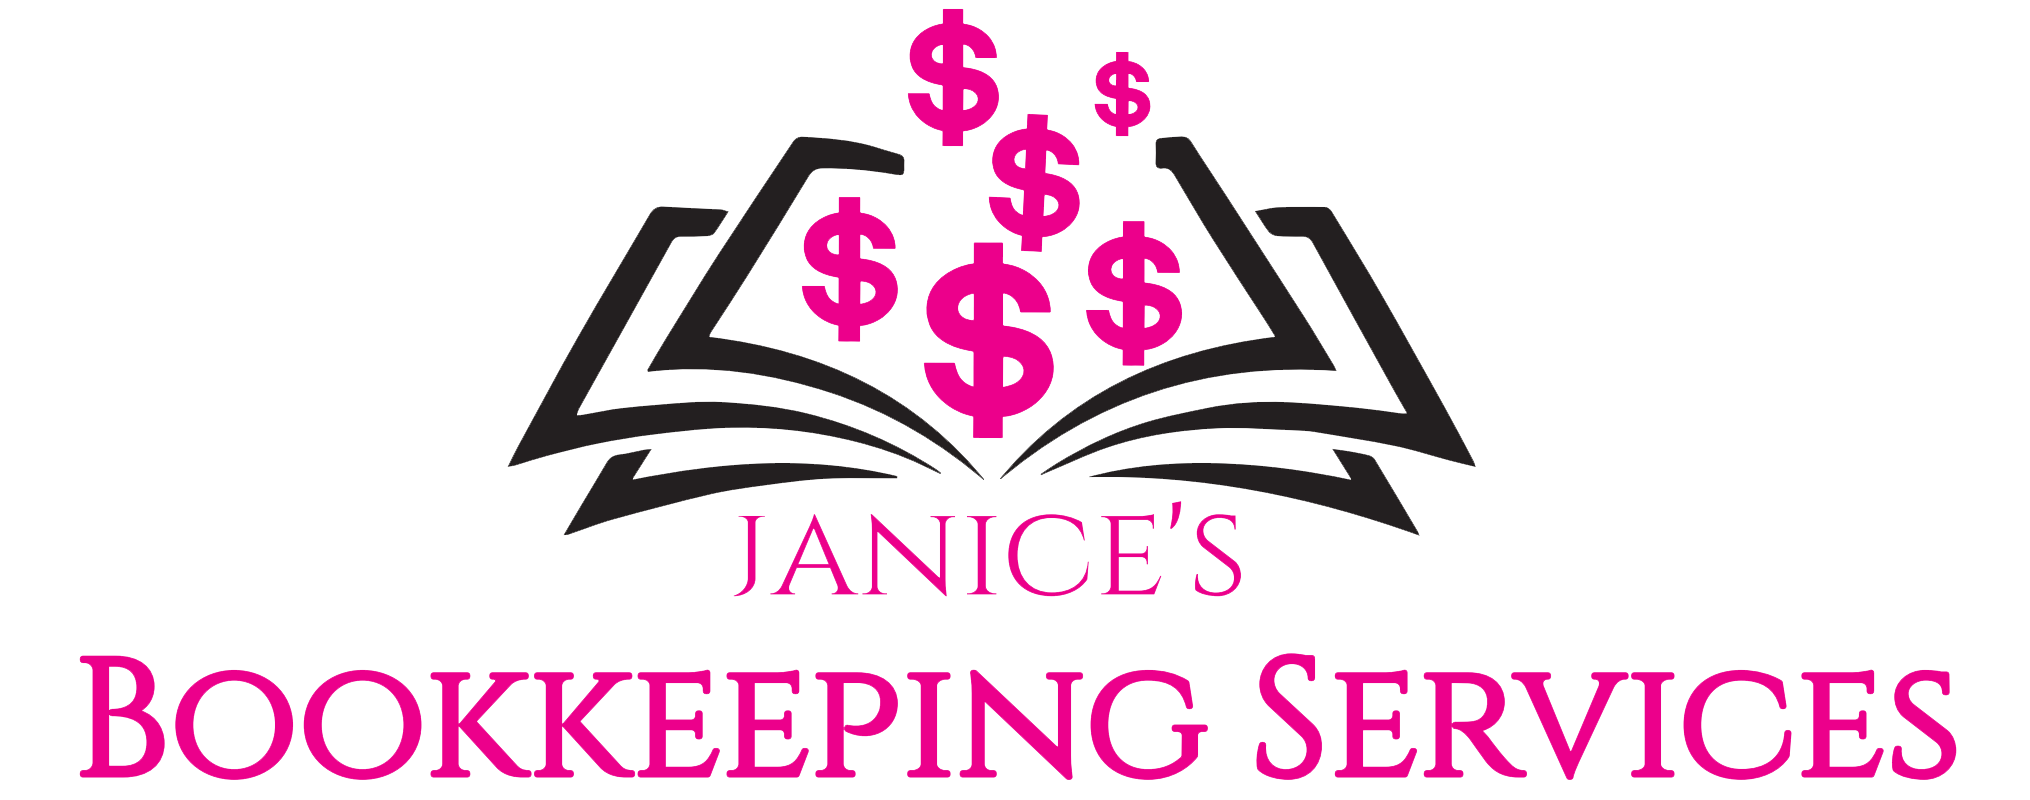 Janice's Bookkeeping Services